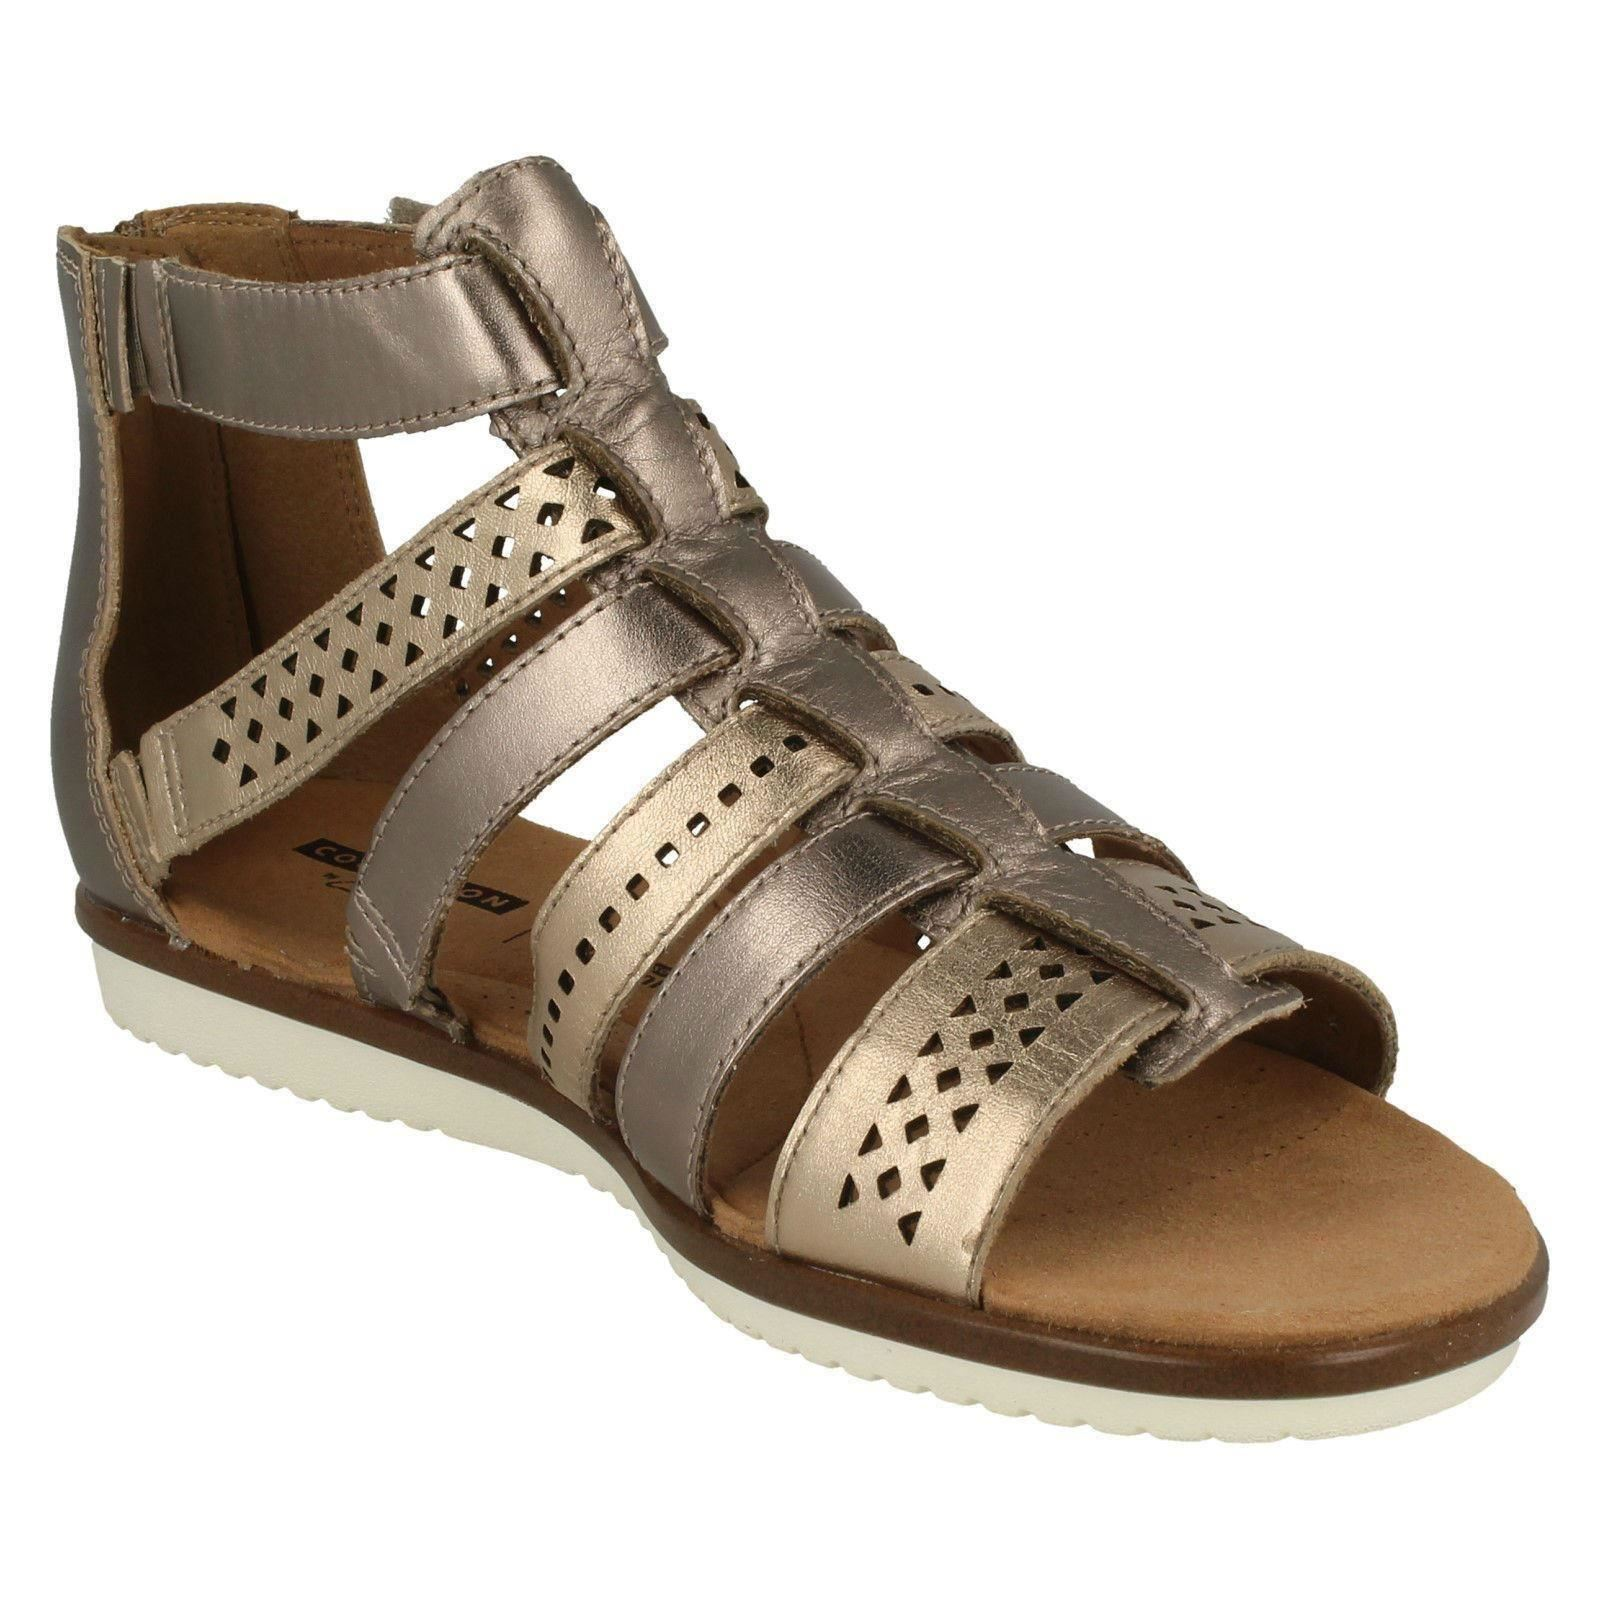 360880530968 Ladies-Clarks-Gladiator-Sandals-Kele-Lotus thumbnail 8